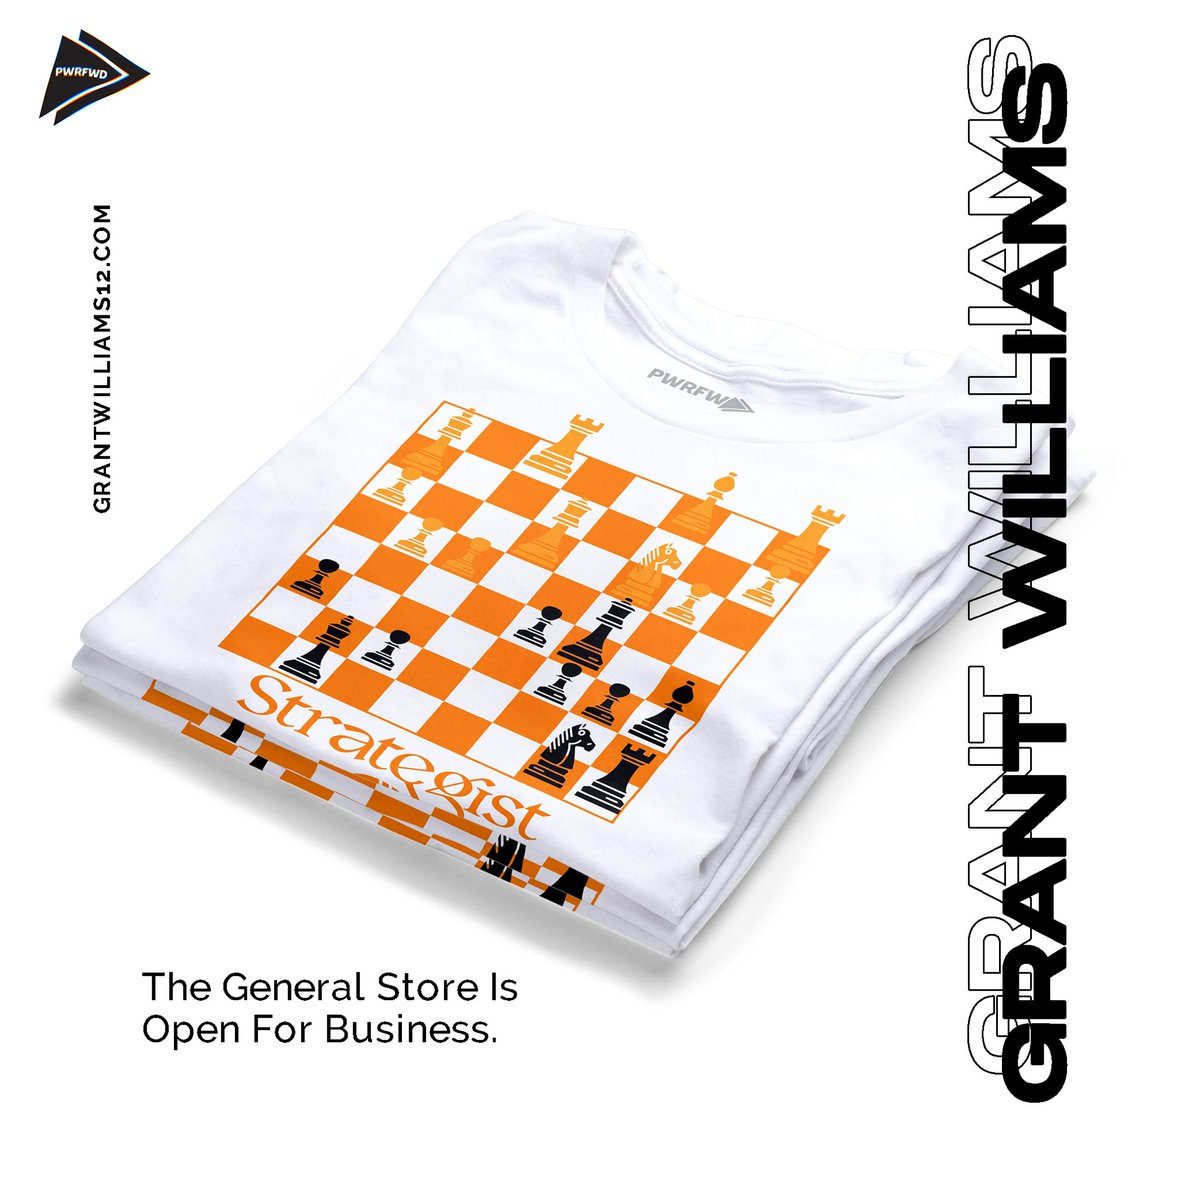 The General Store is open for business‼️ Go check out formerly nationally ranked chess star @Grant2Will's new shop:  #GrantWilliams #TheGeneral #Celtics